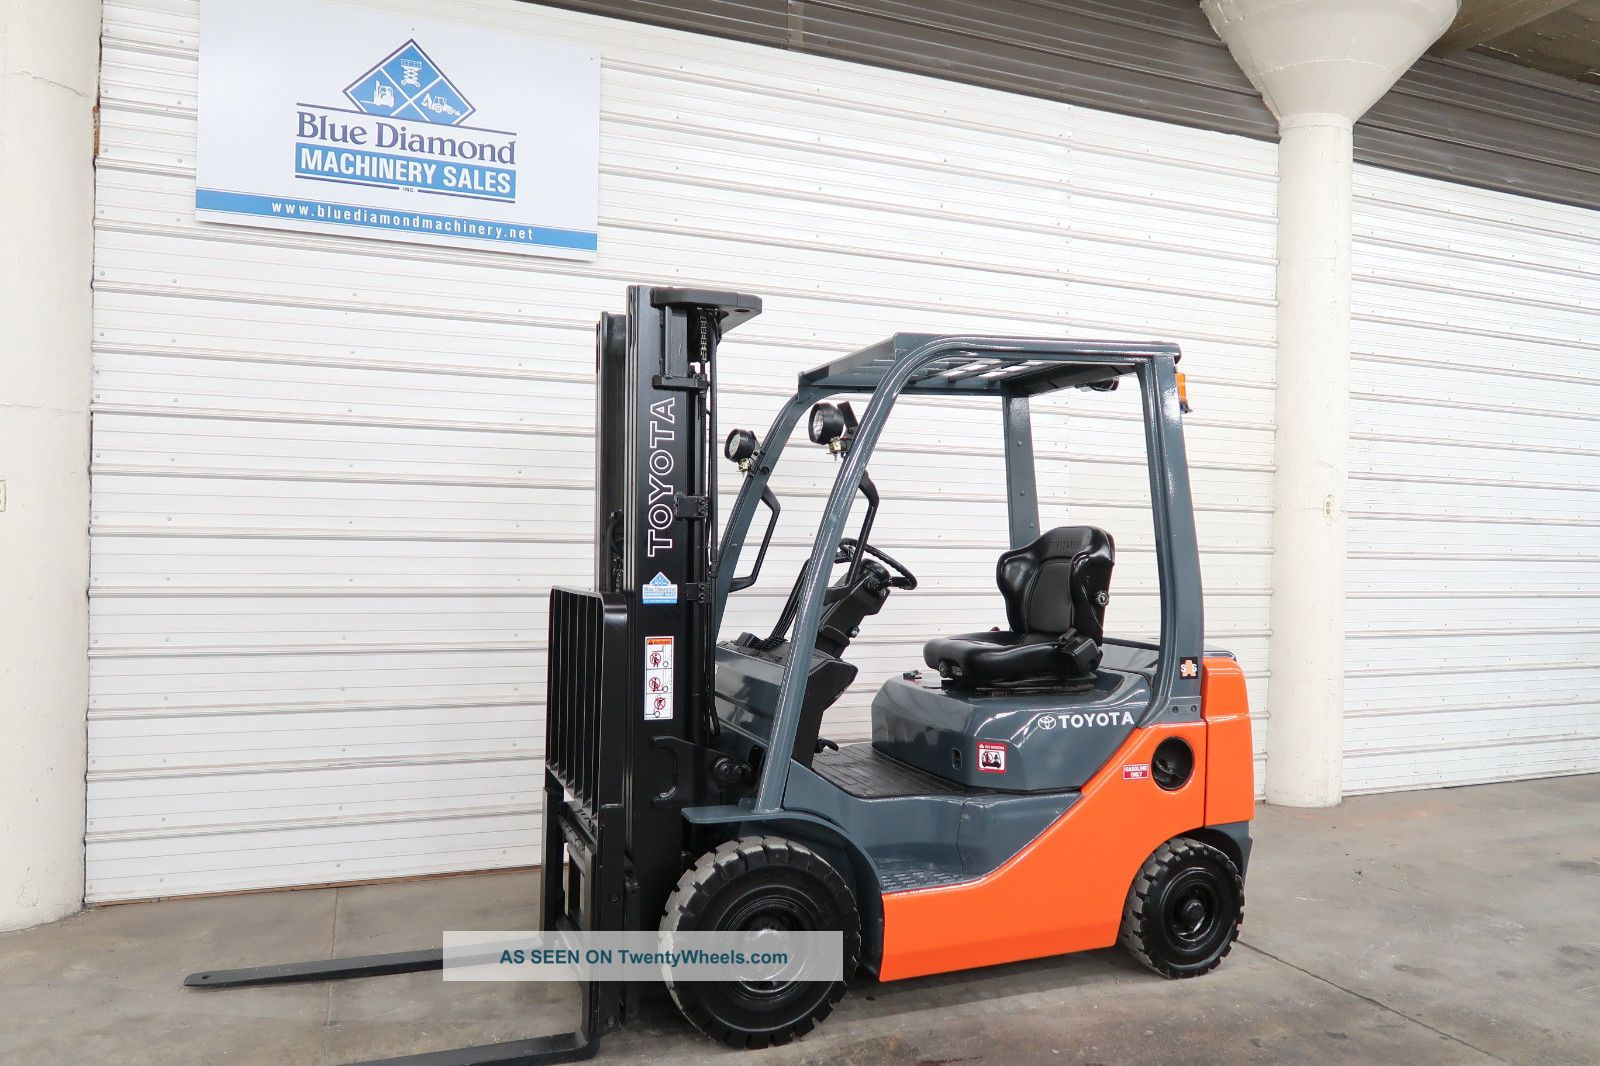 2012 Toyota 8fgu18,  3,  500 Pneumatic Tire Forklift,  189